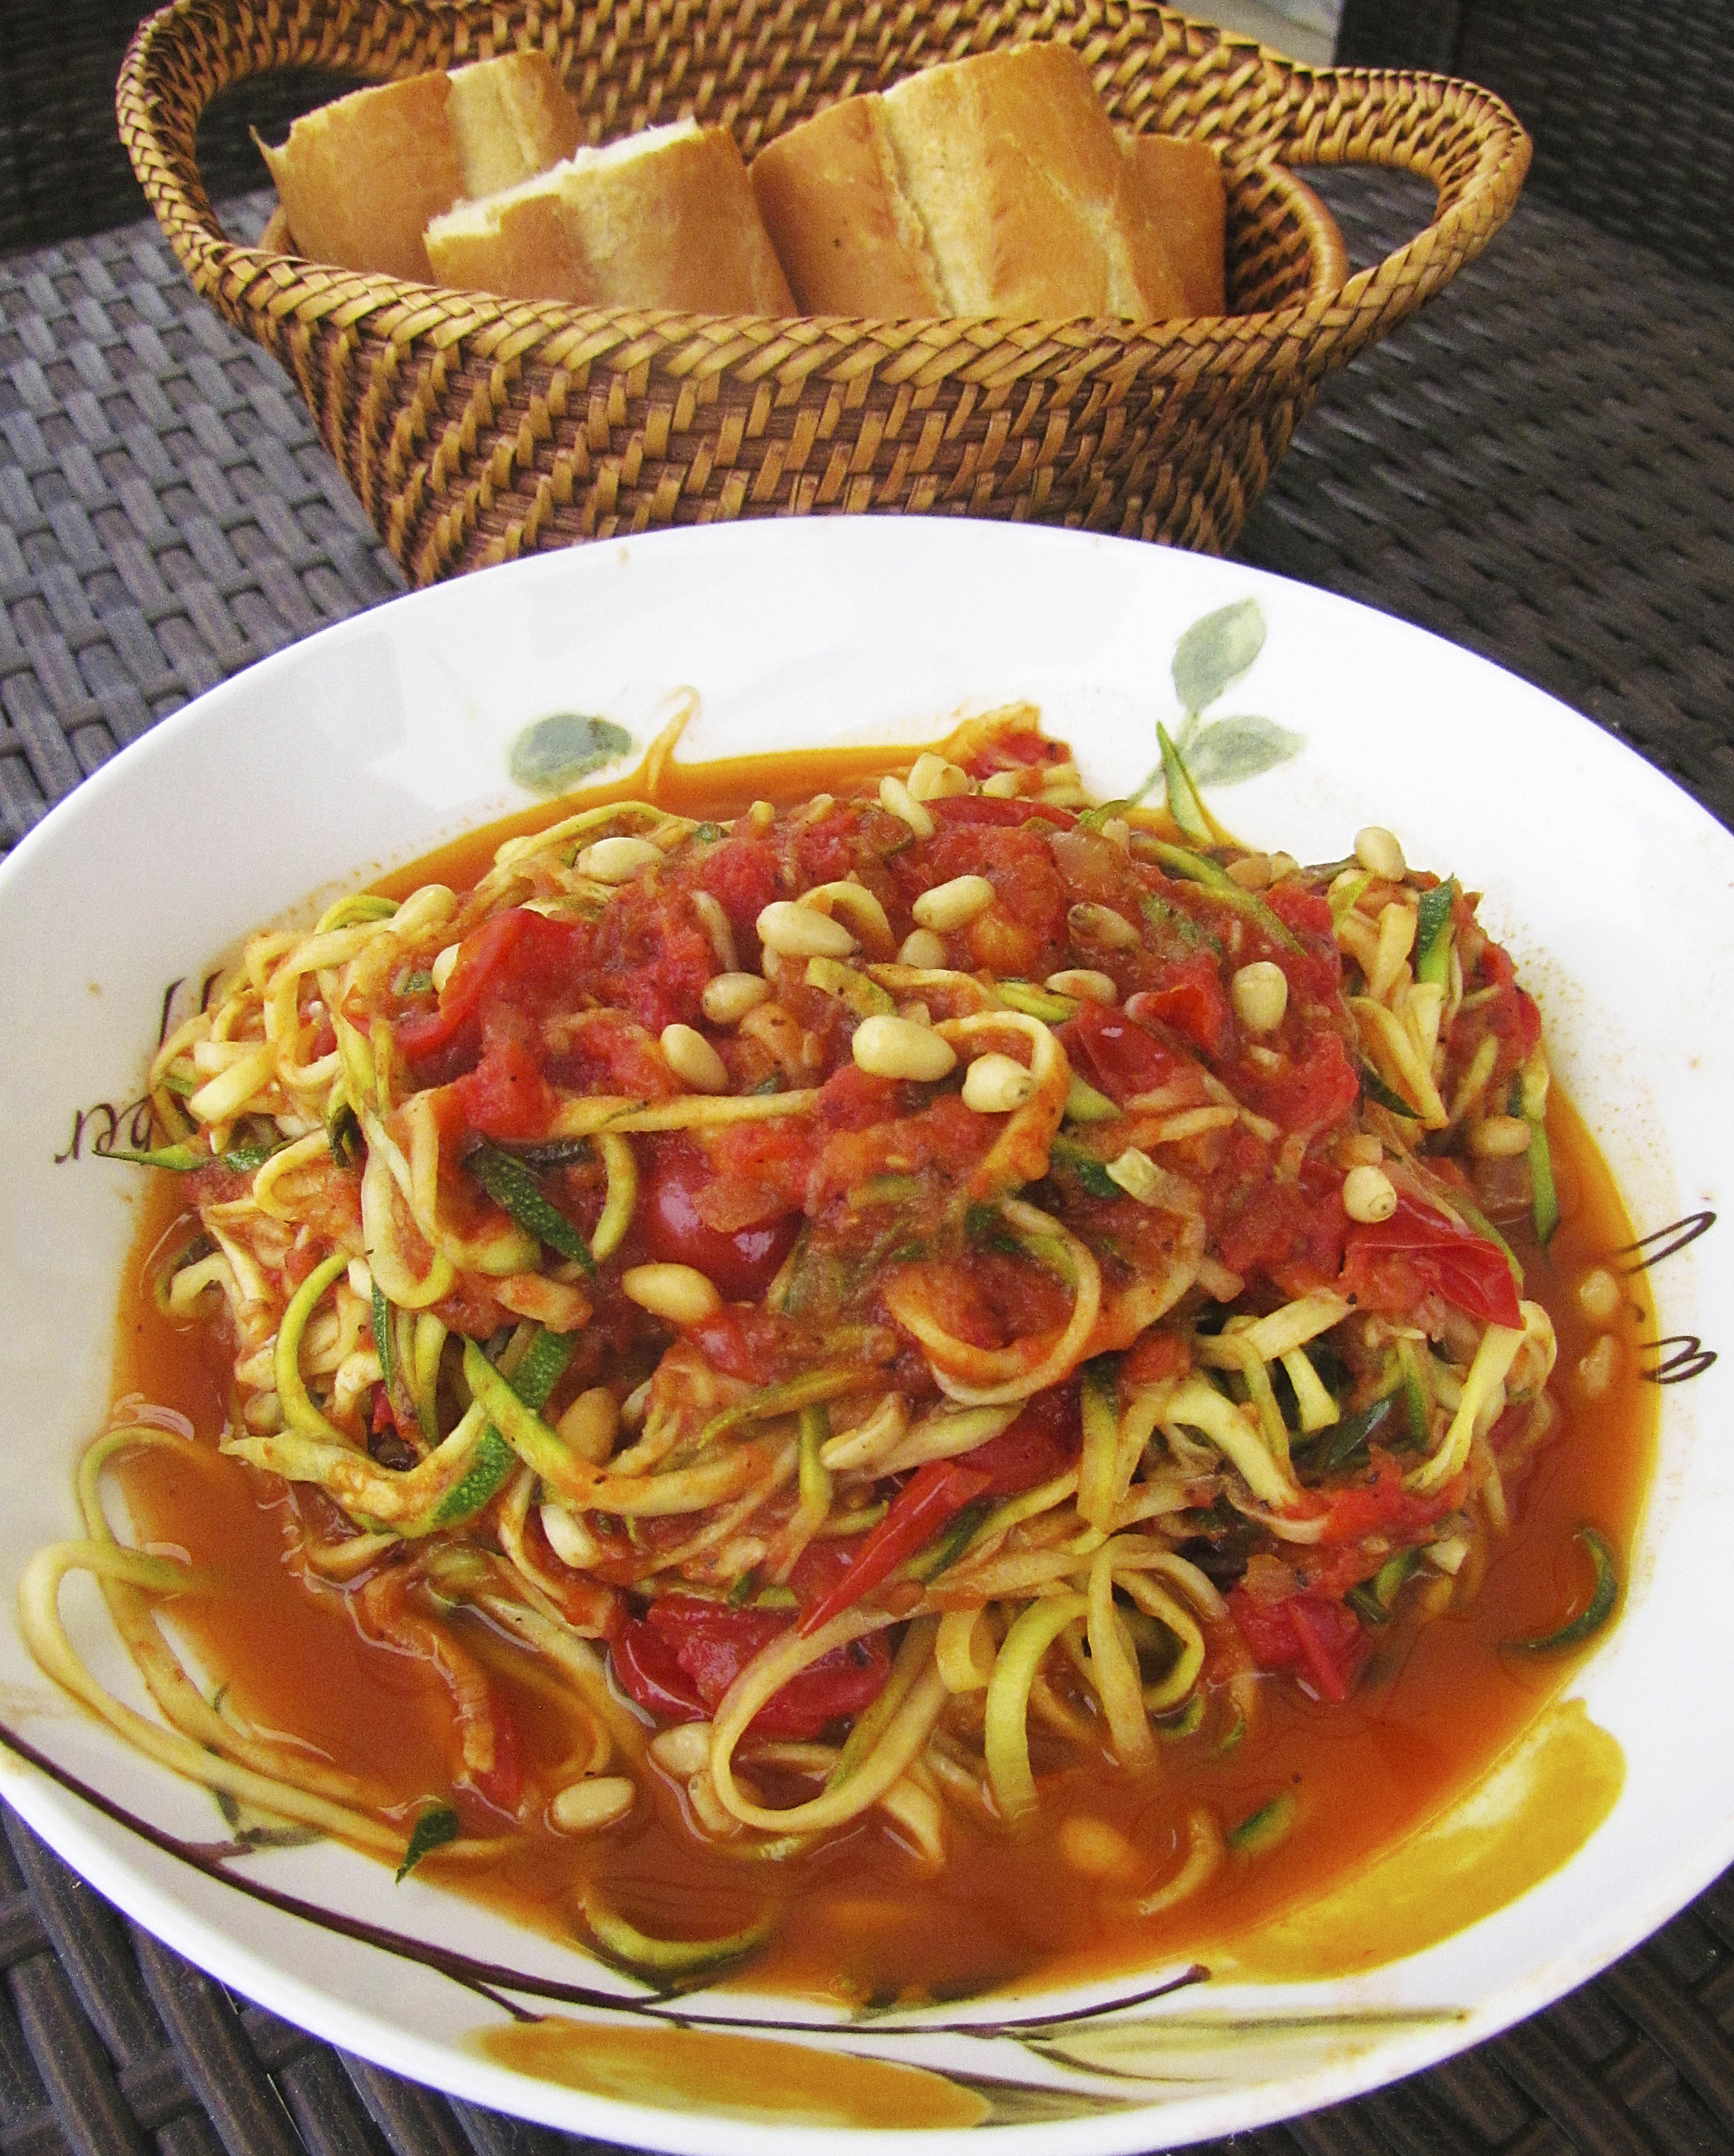 Zoodles with Basil Cherry Tomato Sauce, Pine Nuts & Lemon Zest